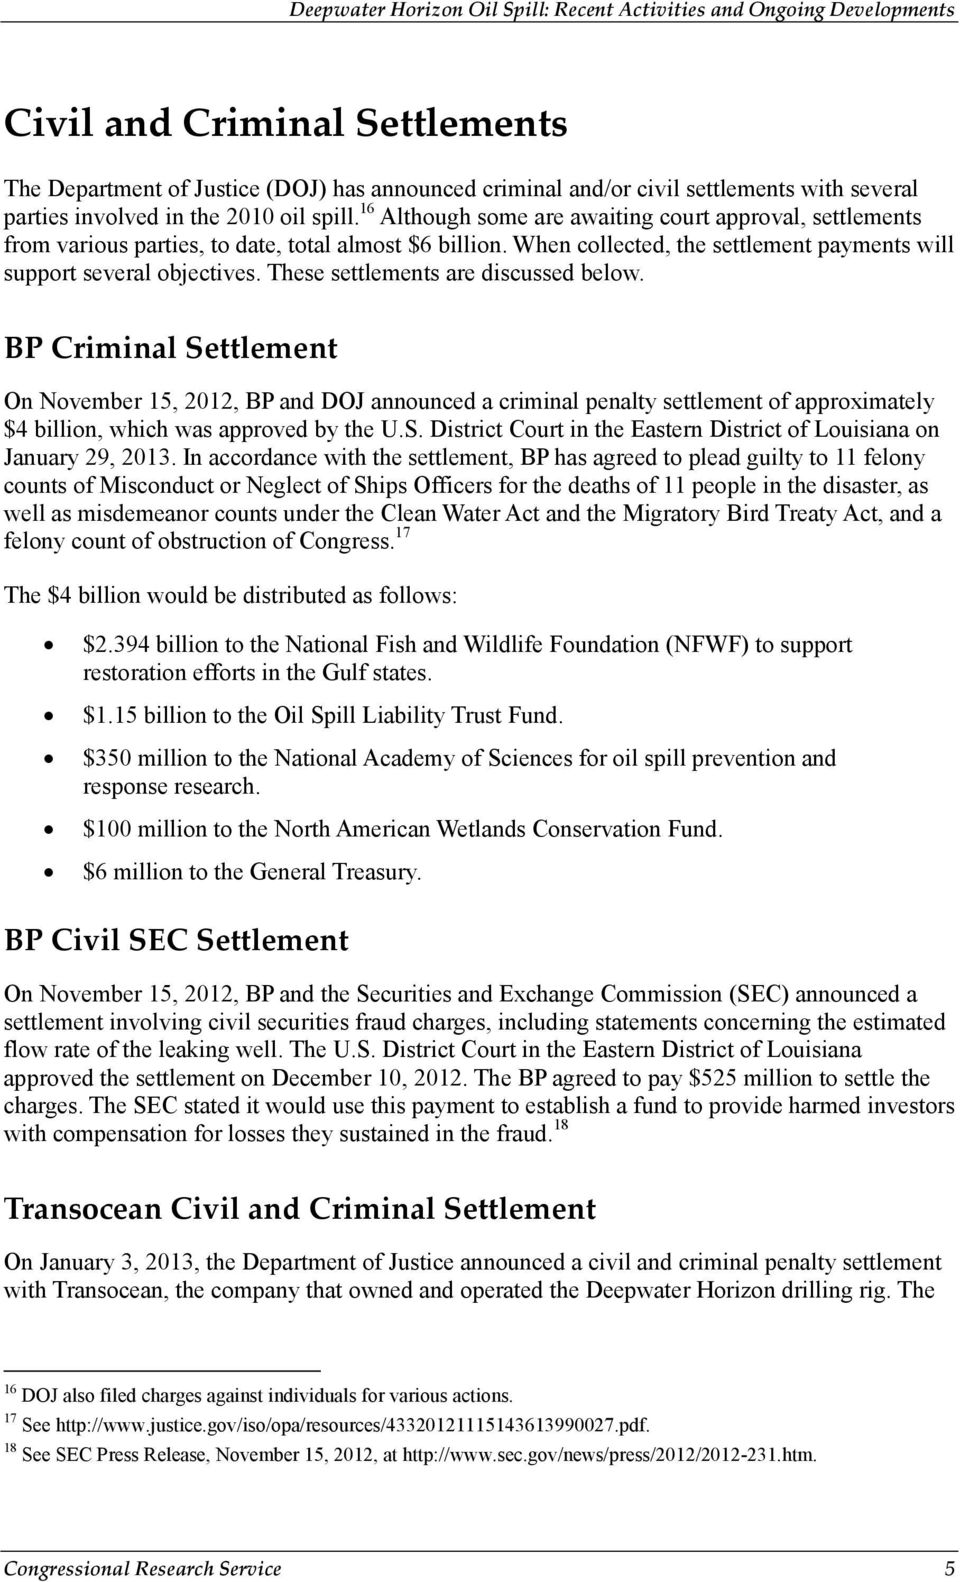 These settlements are discussed below. BP Criminal Settlement On November 15, 2012, BP and DOJ announced a criminal penalty settlement of approximately $4 billion, which was approved by the U.S. District Court in the Eastern District of Louisiana on January 29, 2013.